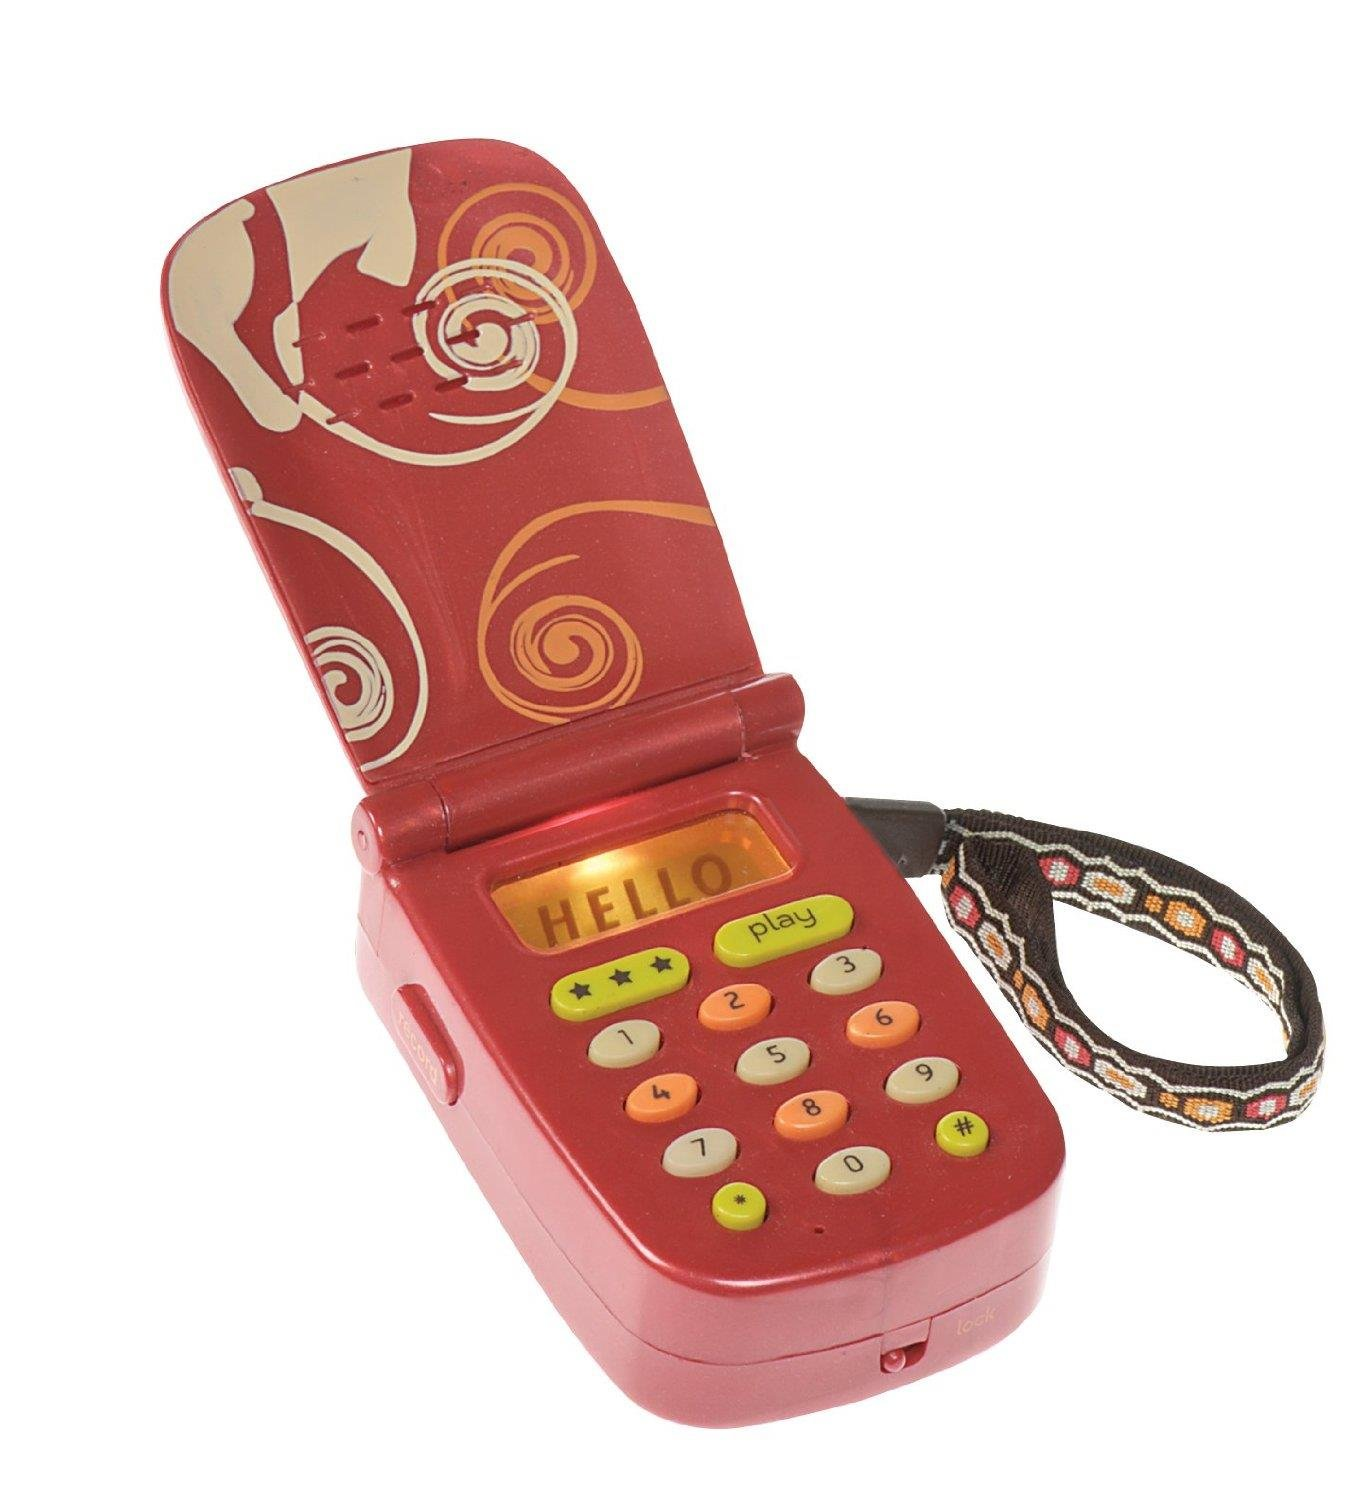 B. toys - Hellophone Toy Cell Phone - Kids Play Phone with Light Sounds and Songs - Toddler Toy Phone with Message Recorder - 100% Non-Toxic and BPA-Free by Bristle Blocks by Battat